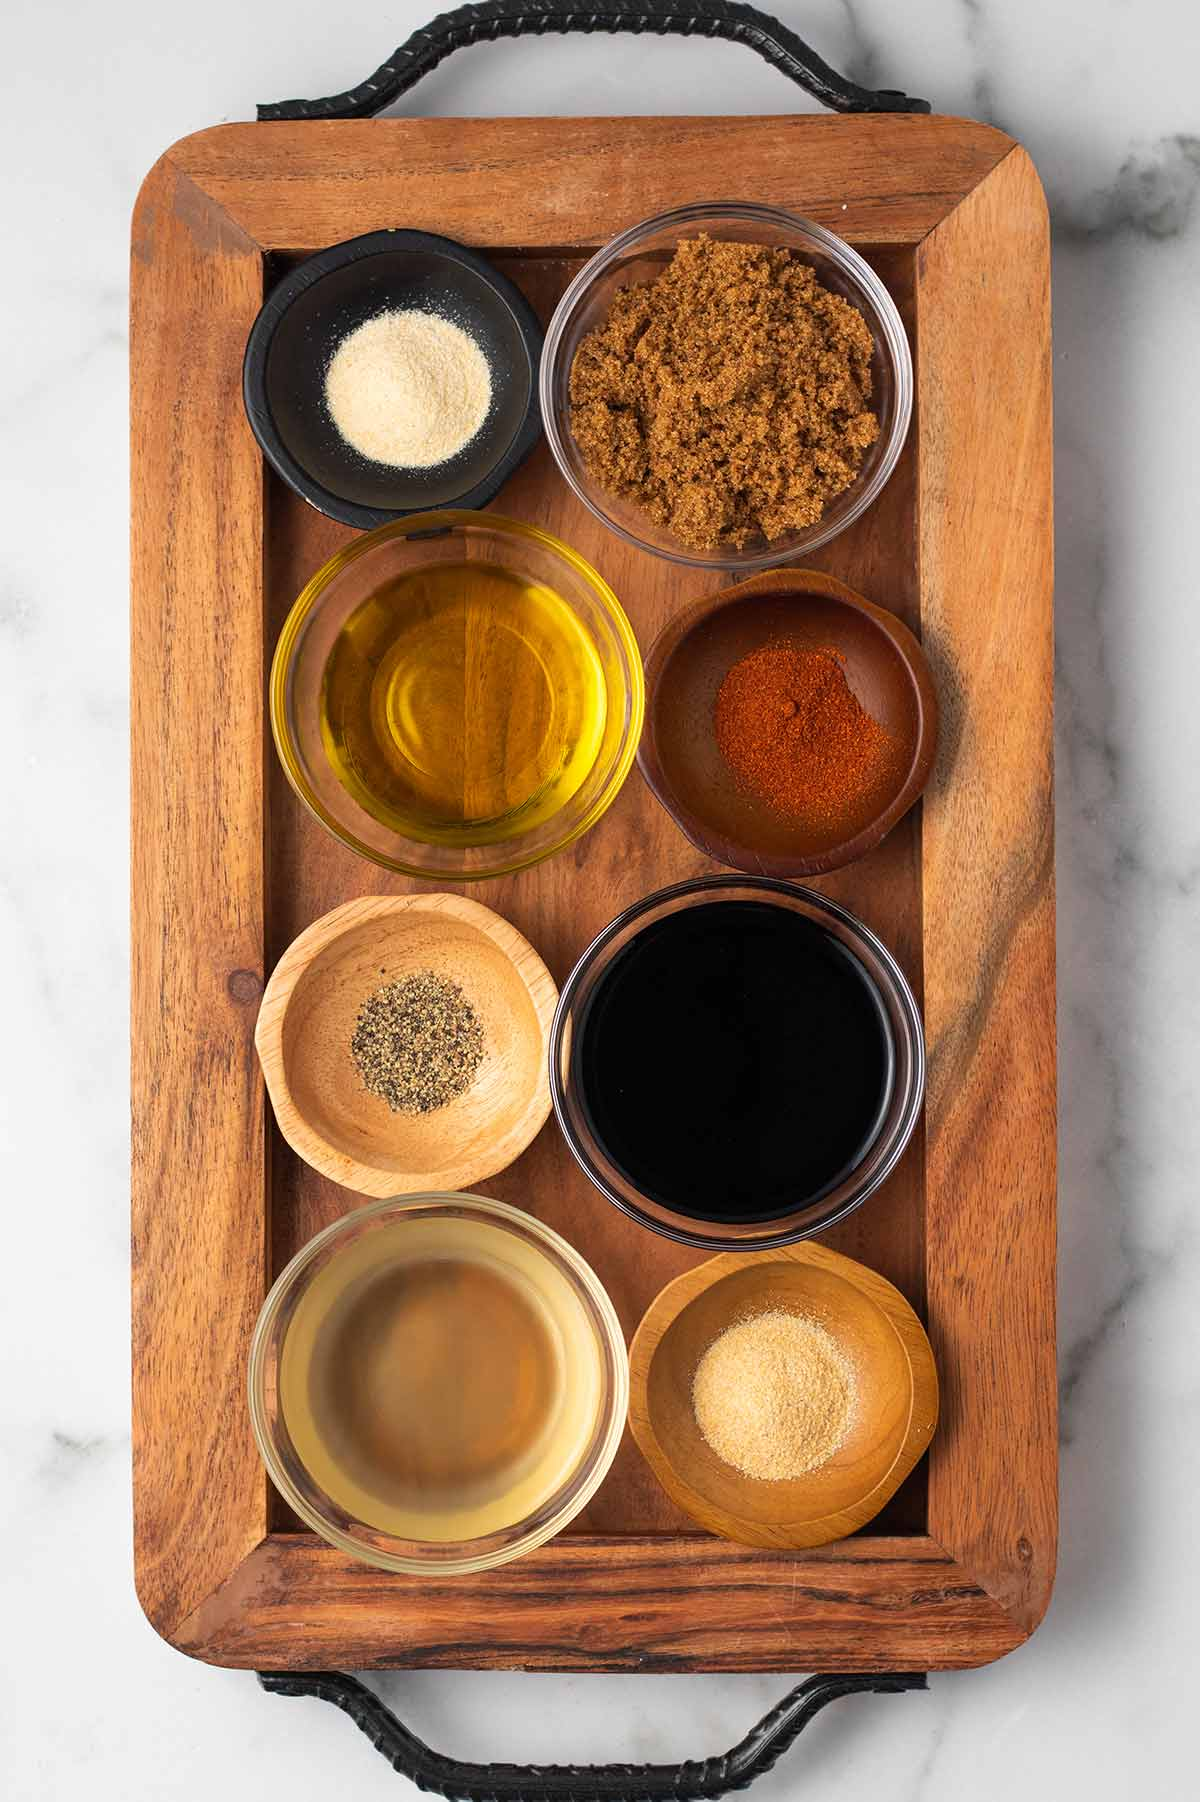 A wooden board with the ingredients for baked BBQ tofu marinade in small bowls. From left to right: onion powder, brown sugar, olive oil, smoked paprika, black pepper, soy sauce, apple cider vinegar, and garlic powder.